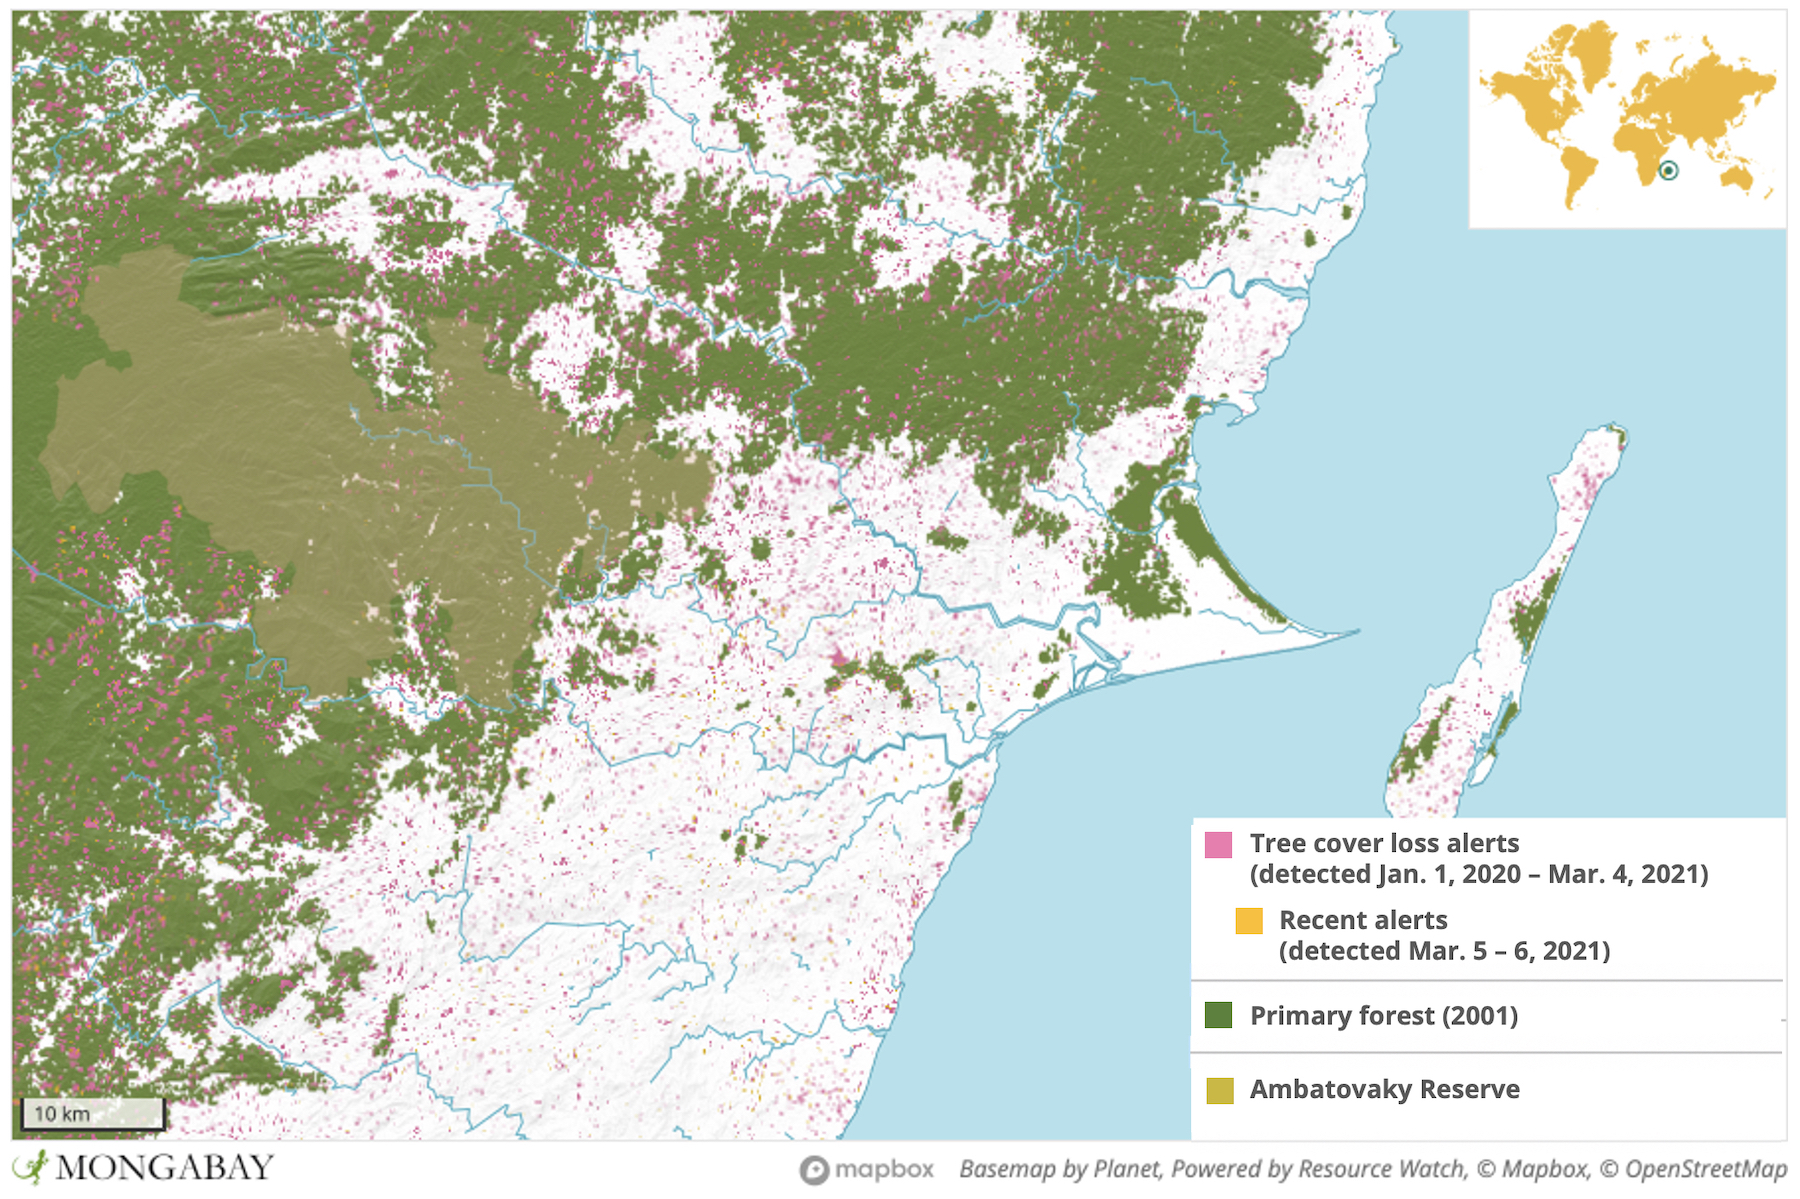 Satellite data from the University of Maryland show Ambatovaky experienced a surge in deforestation in 2020.